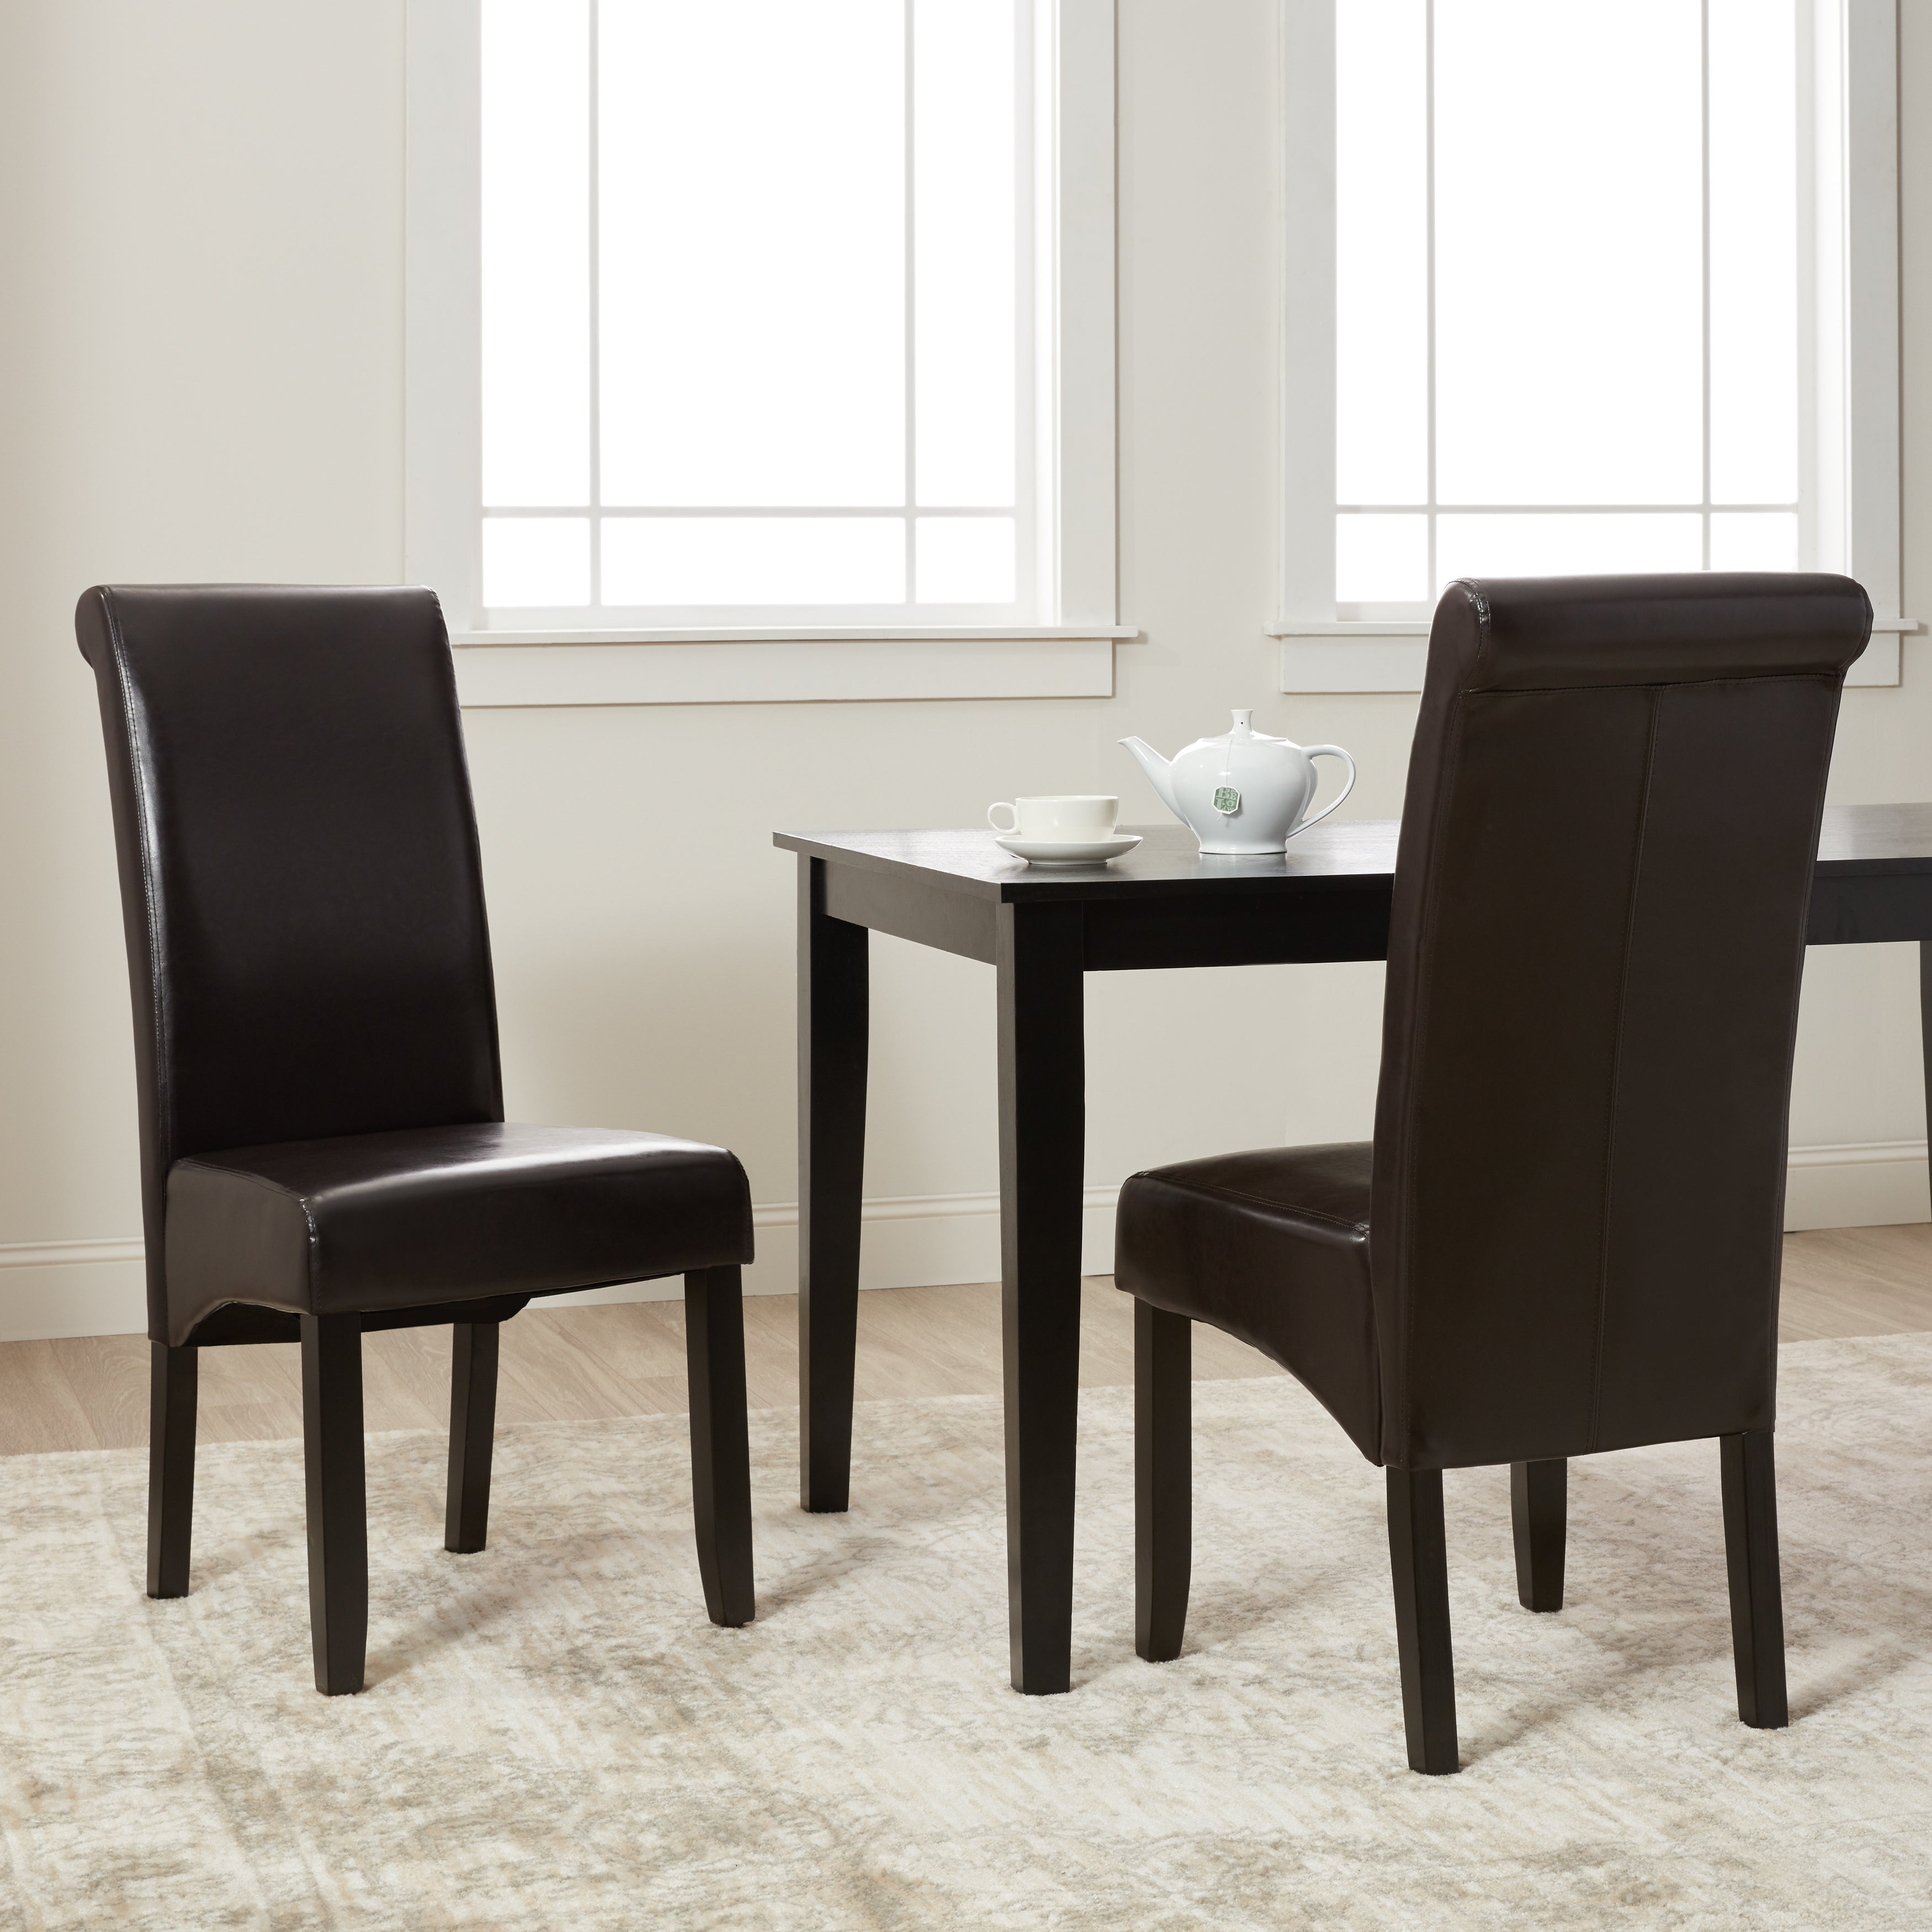 Milan Faux Leather Dining Chairs Set Of 2